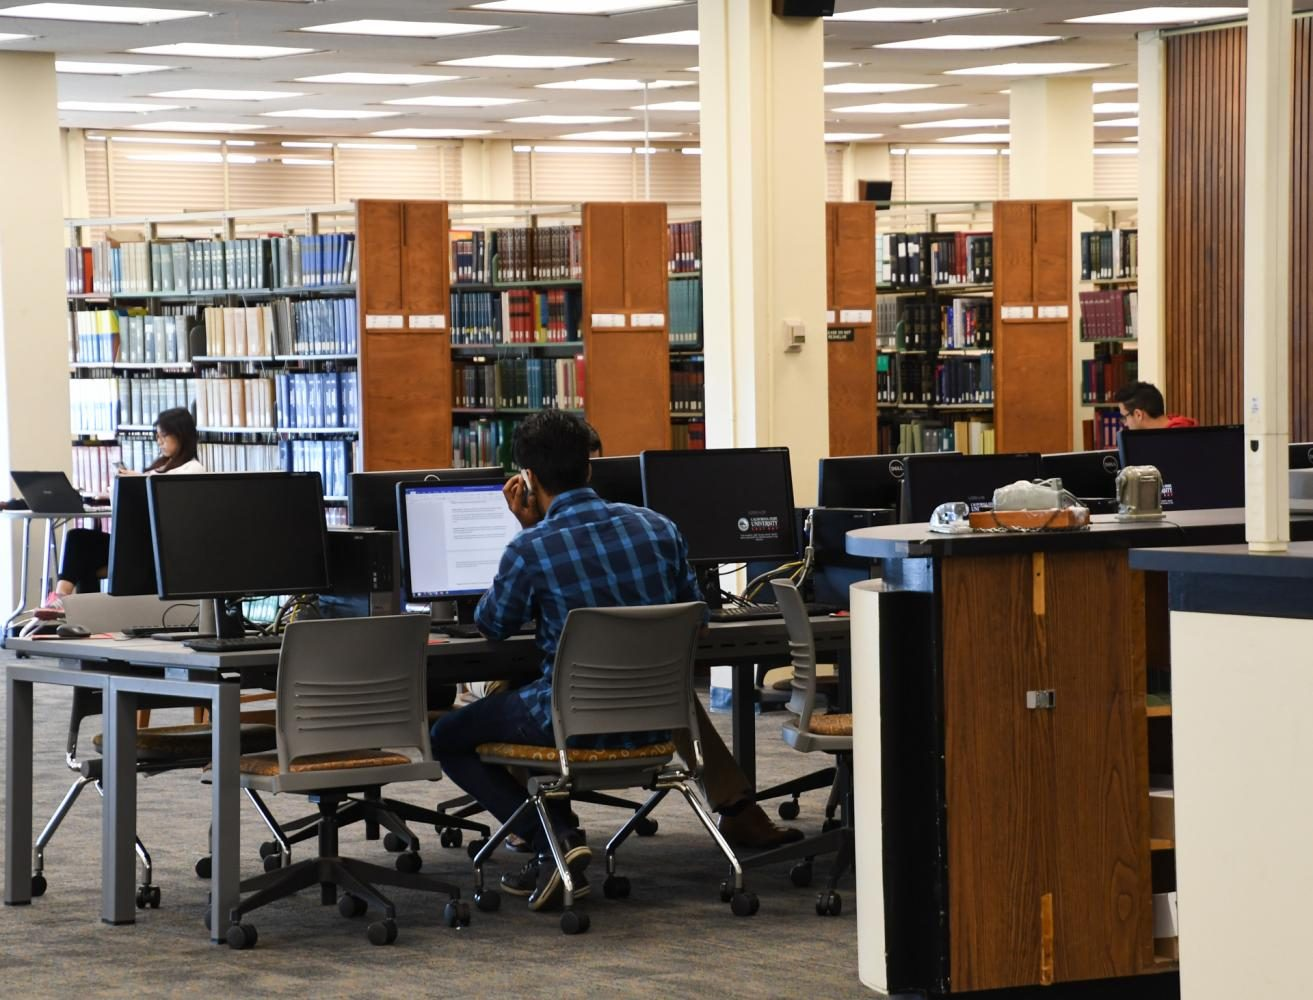 The library scene is not as dead as you think